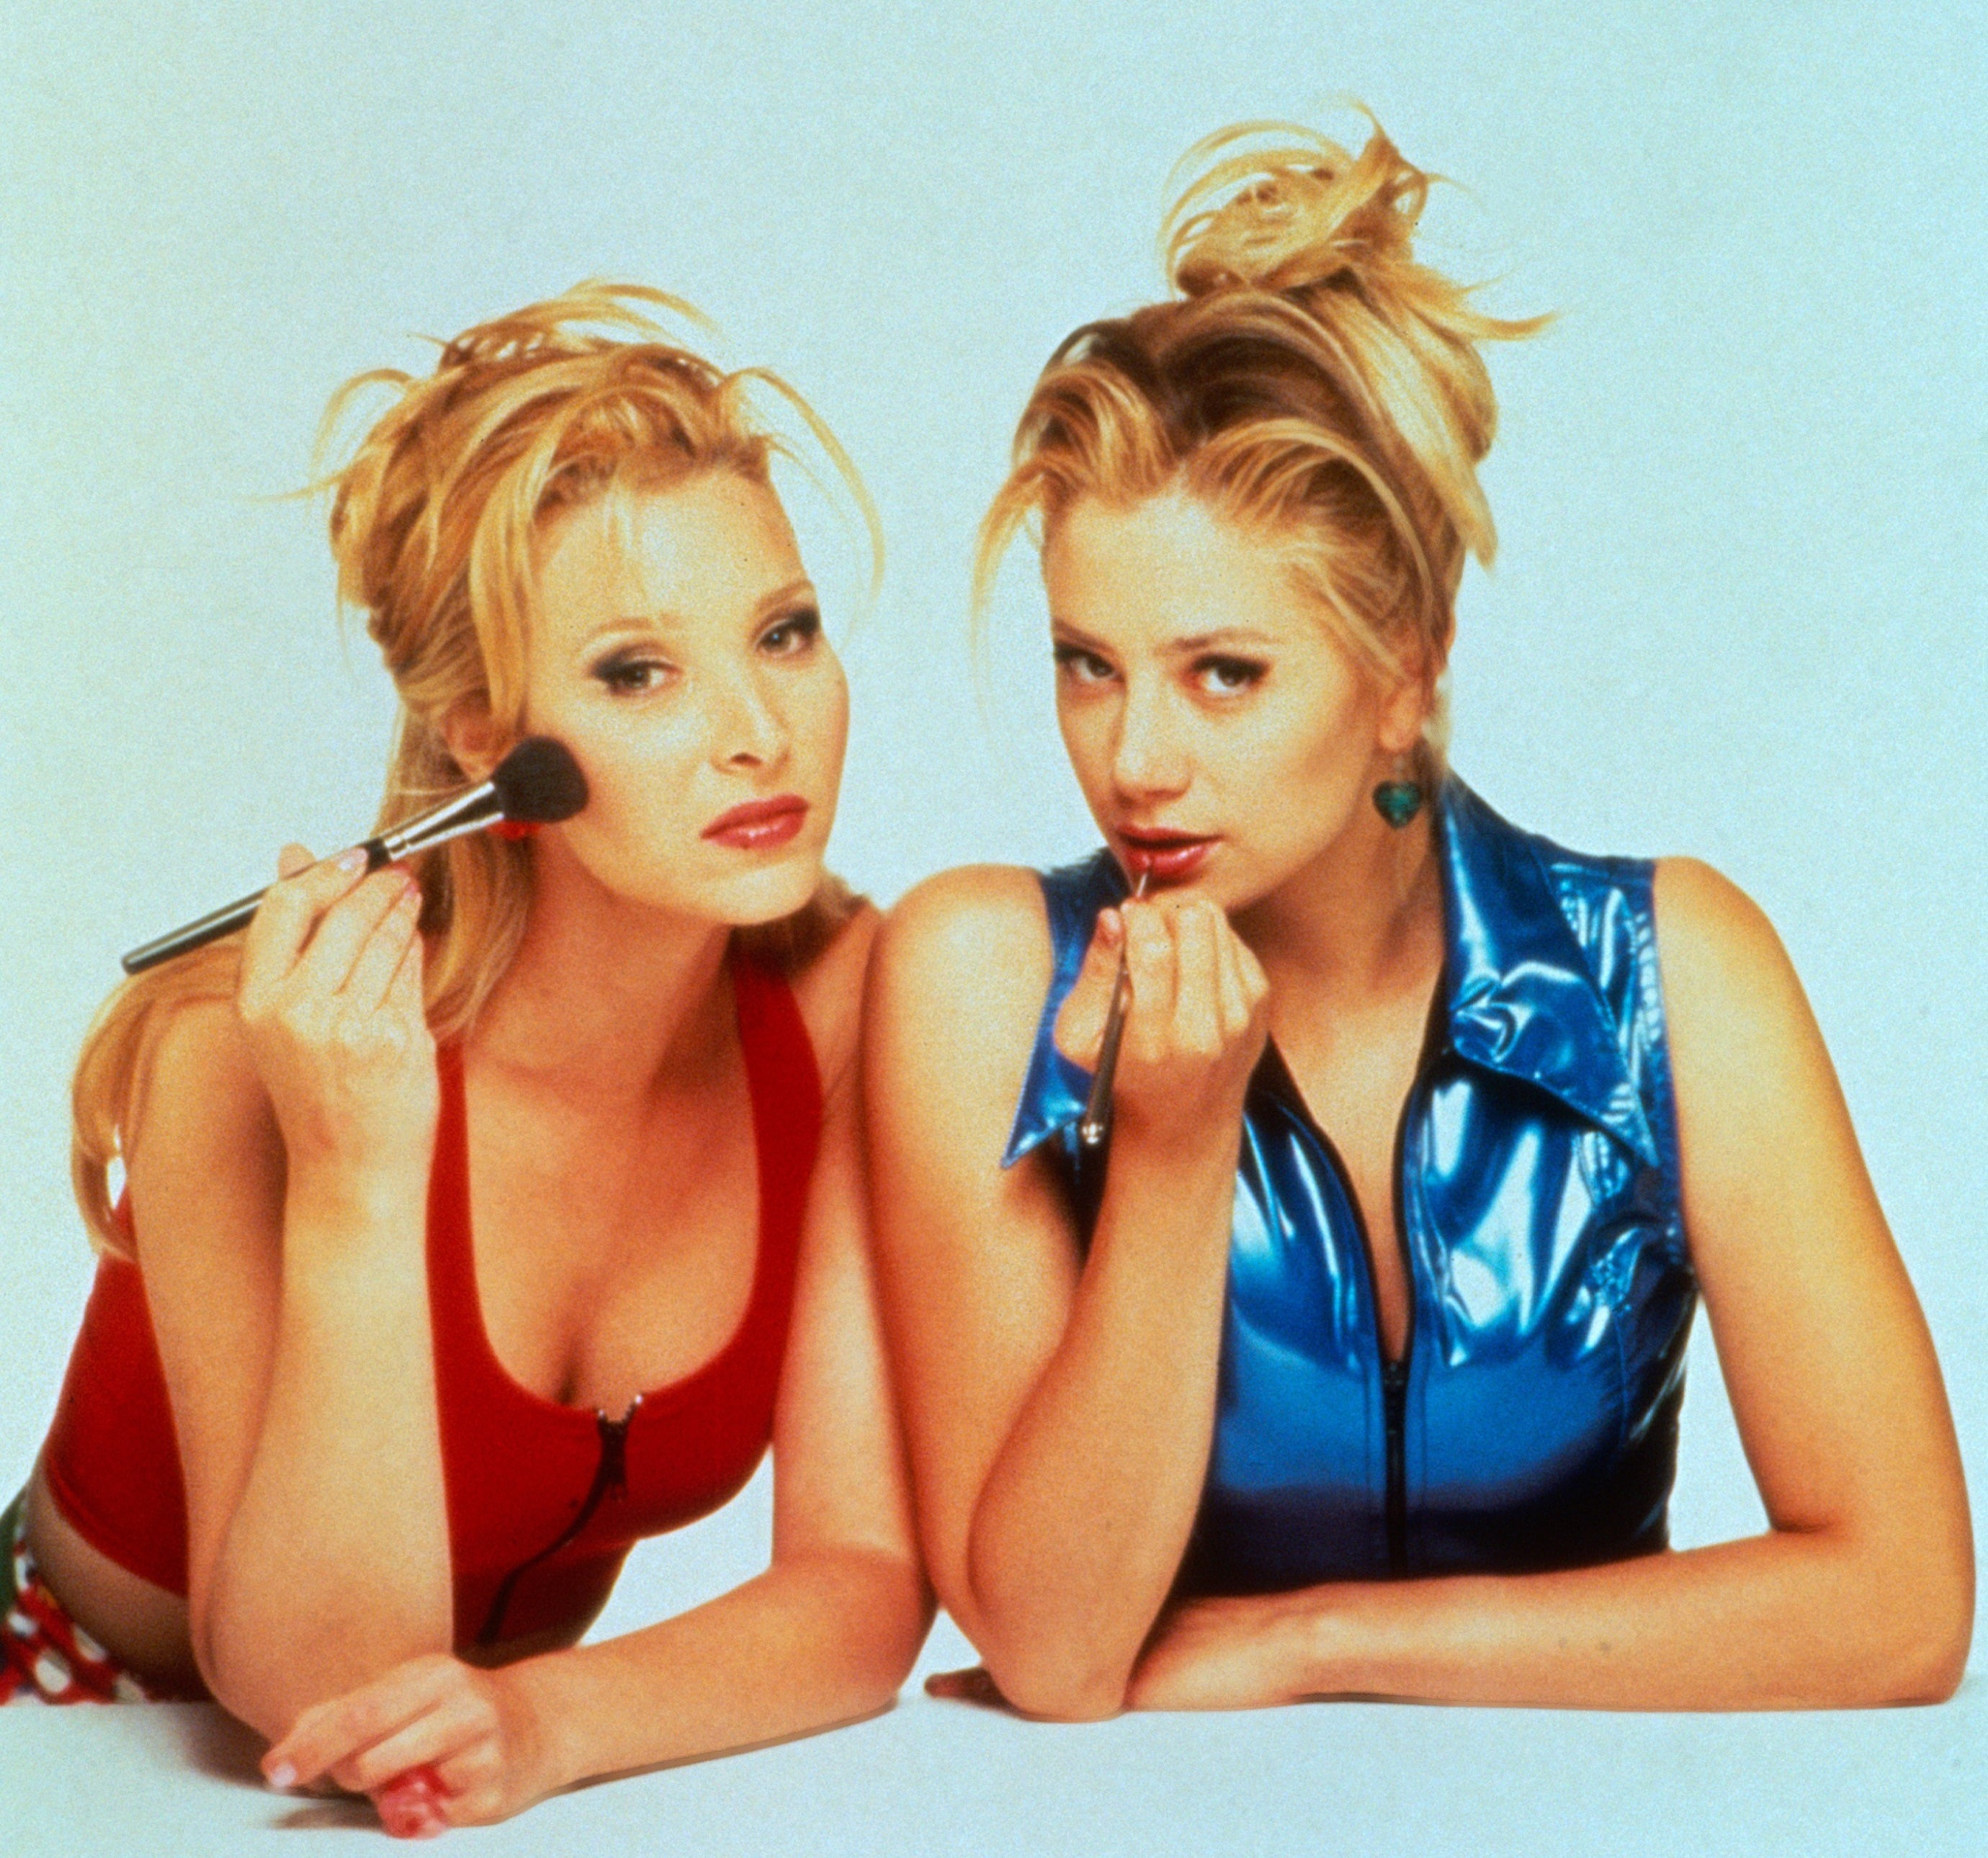 A promotional photo of Lisa Kudrow and Mira Sorvino as Romy and Michele putting on makeup